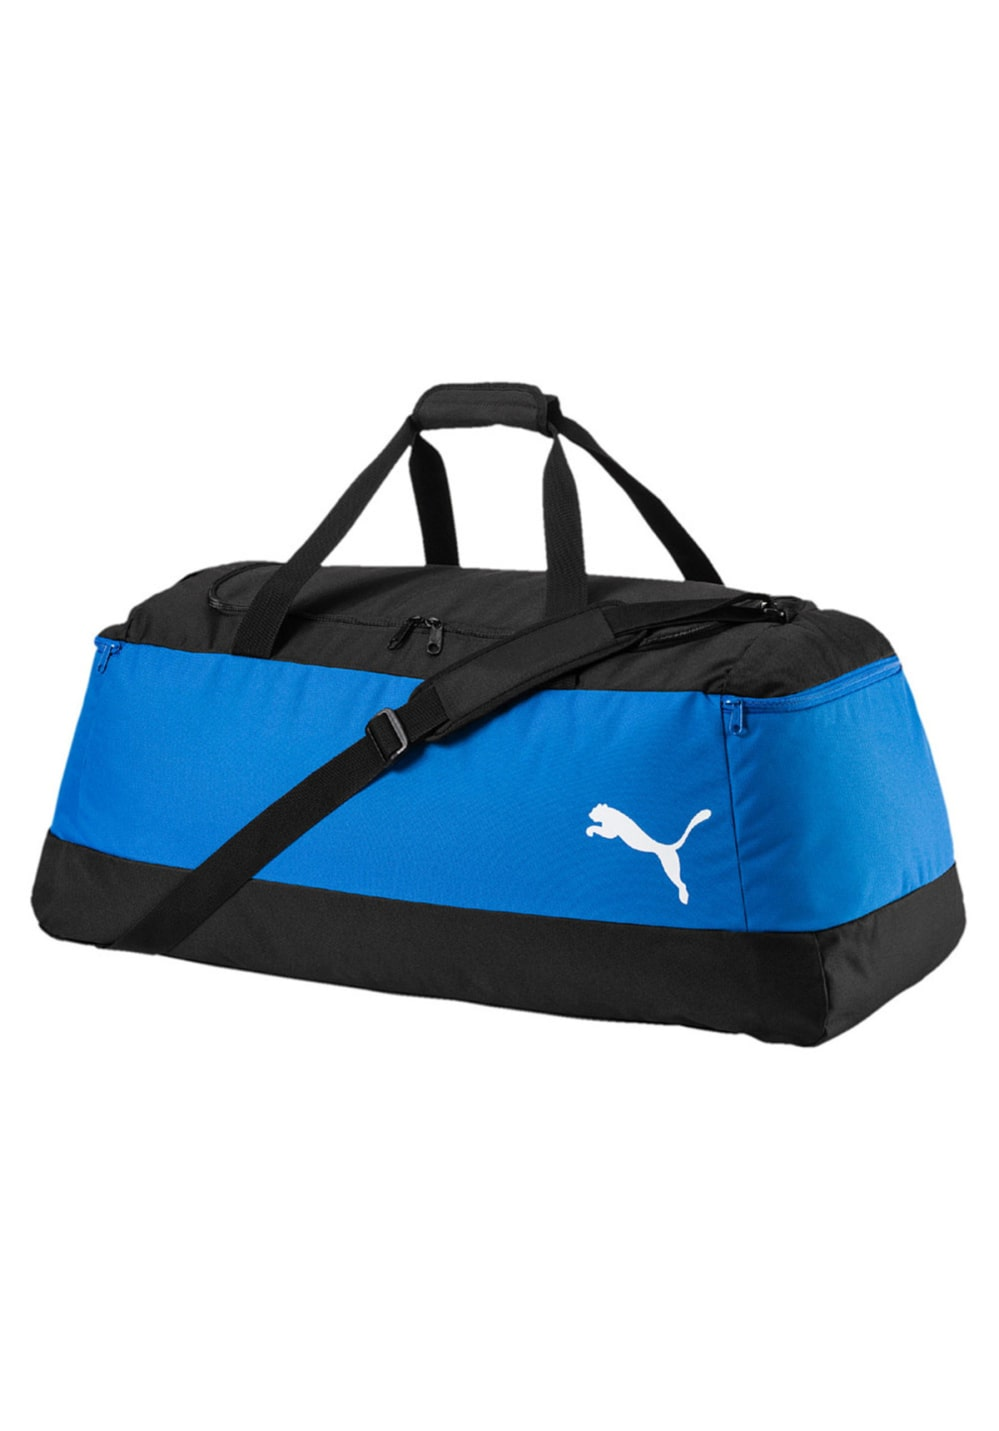 ... Puma Pro Training II Large Bag - Sports bags - Black. Back to Overview.  -60% 876a10de5e555